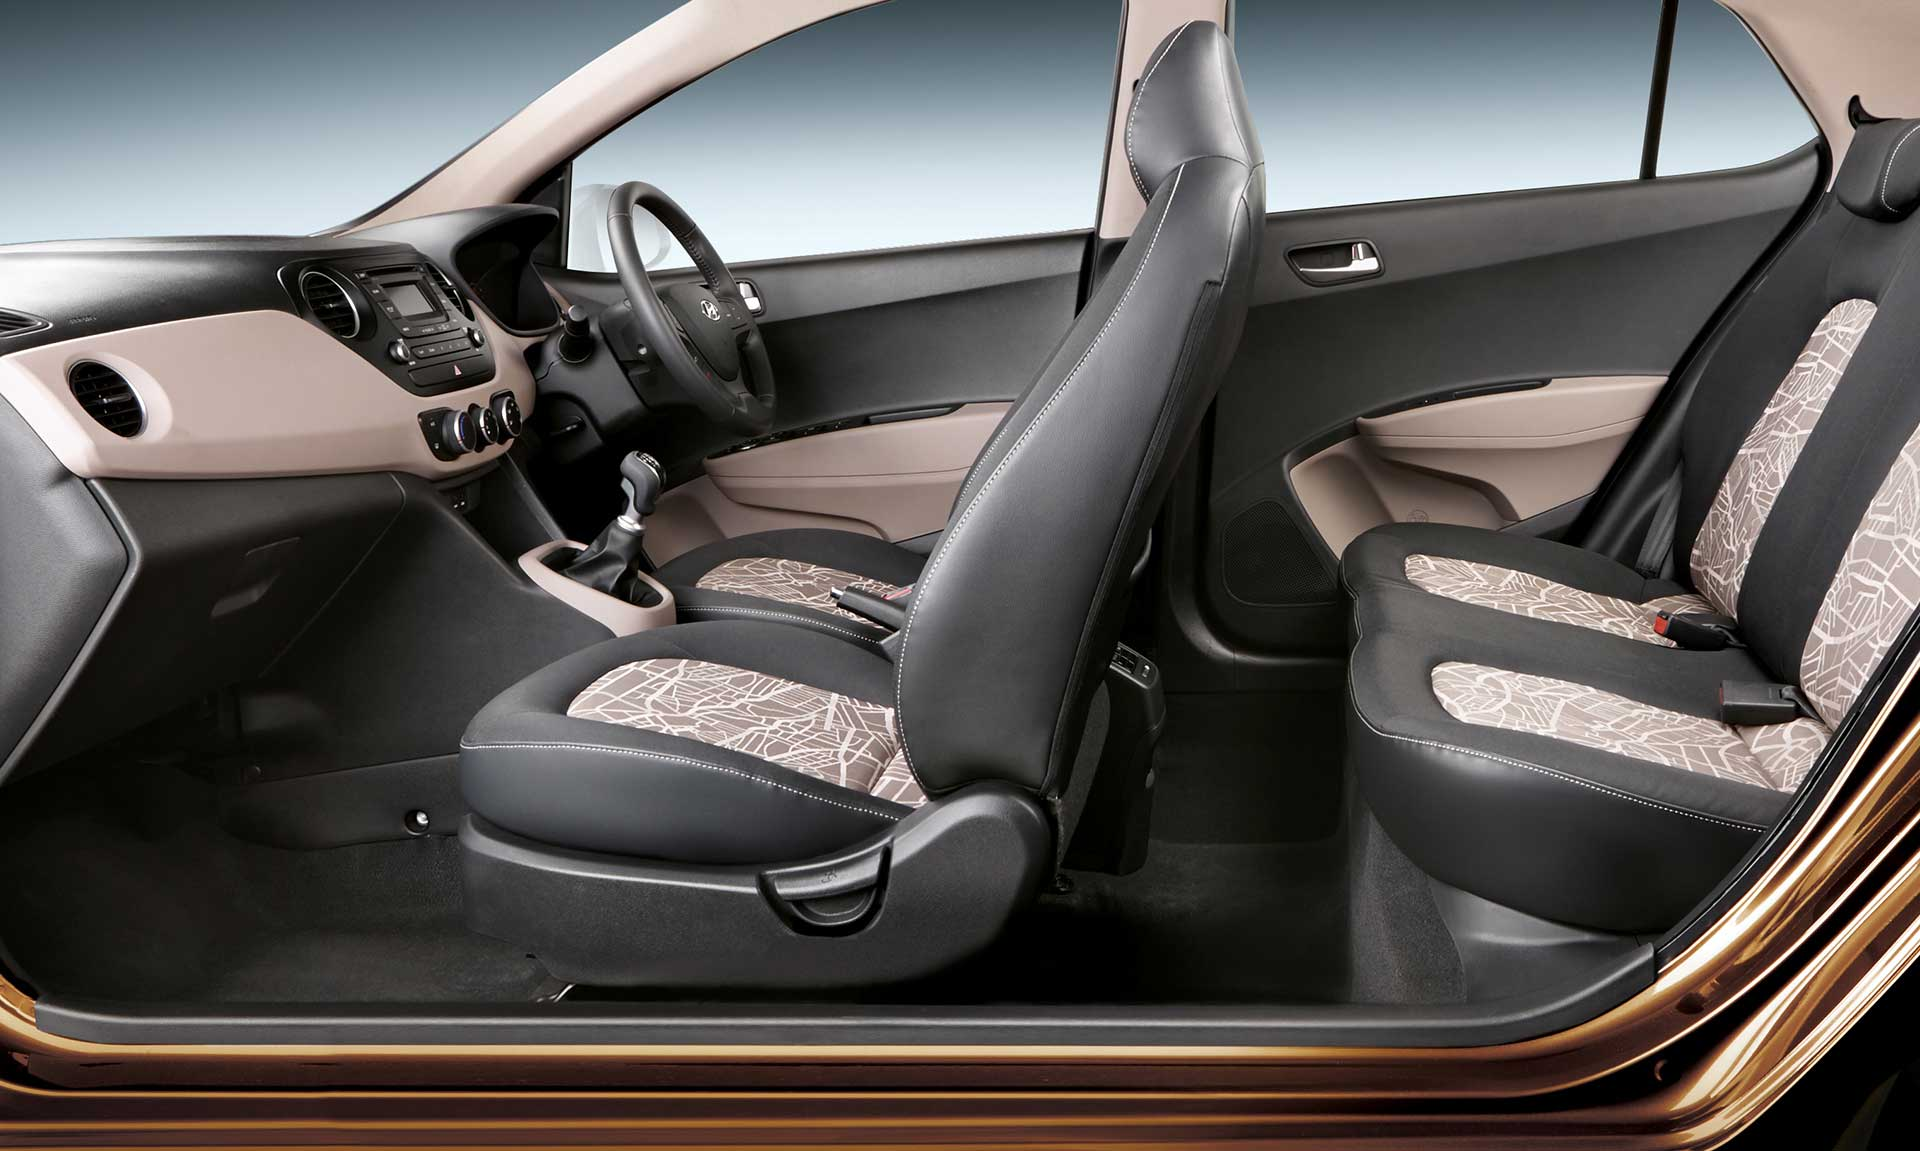 Hyundai Grand I10 1 2 Sportz Edition Interior Image Gallery